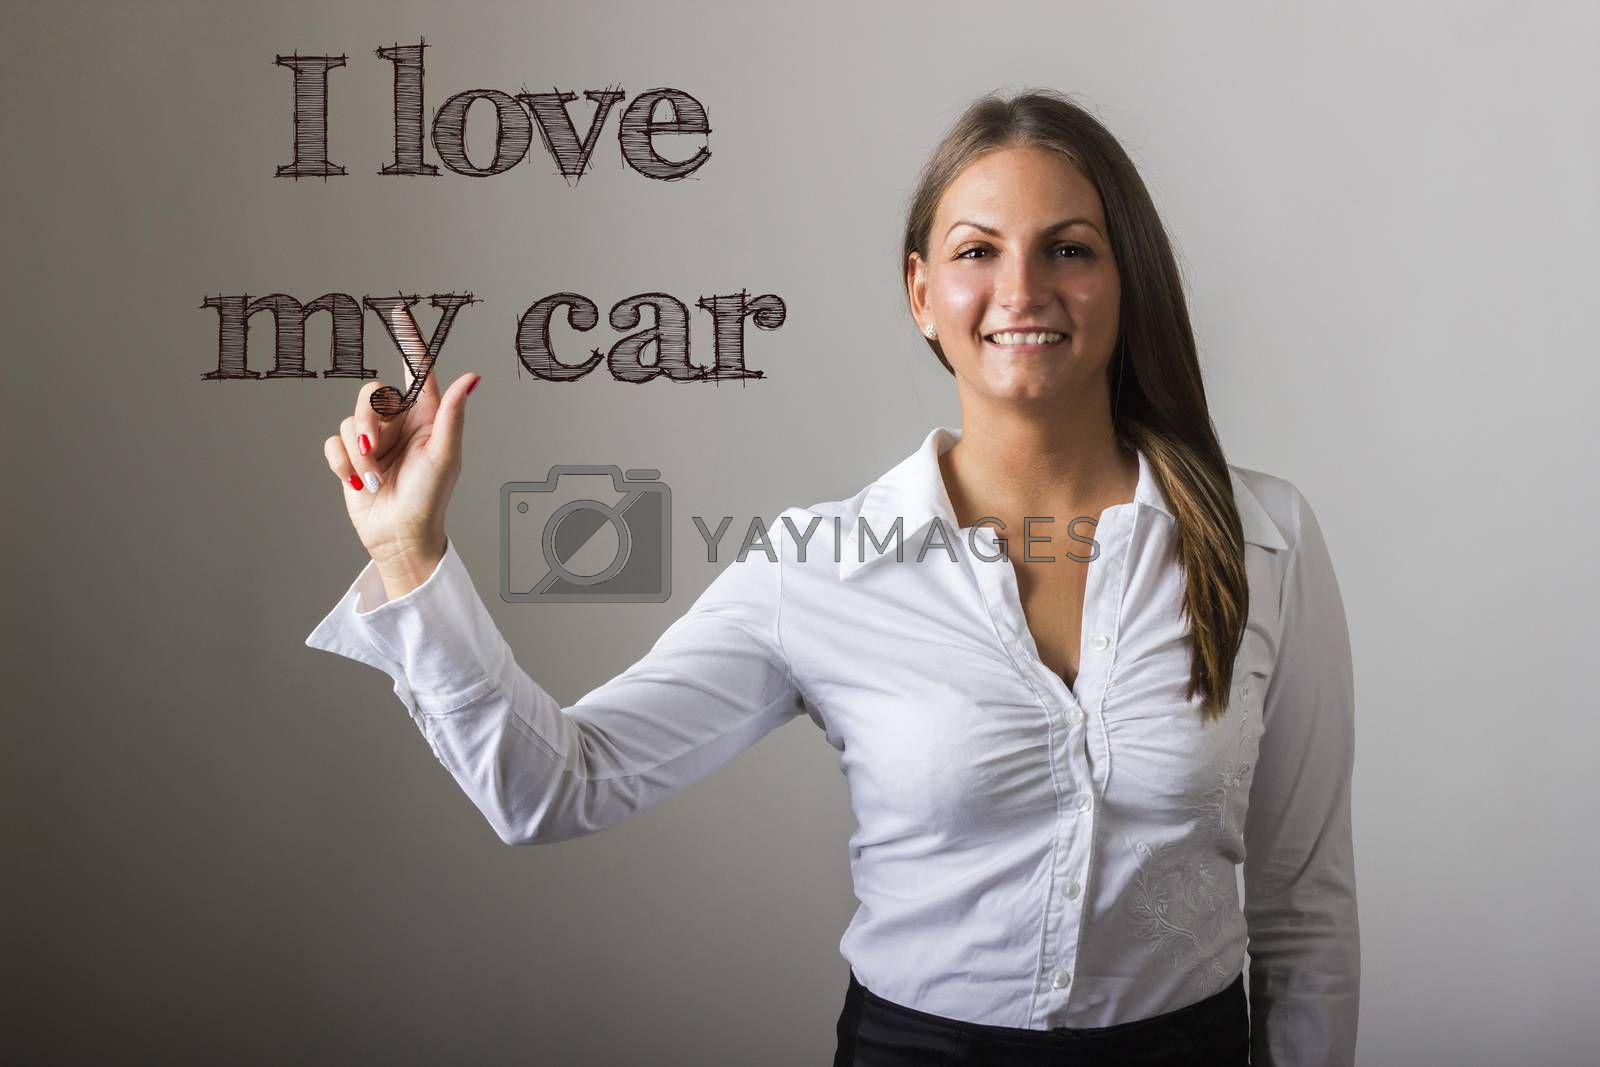 I love my car - Beautiful girl touching text on transparent surface - horizontal image